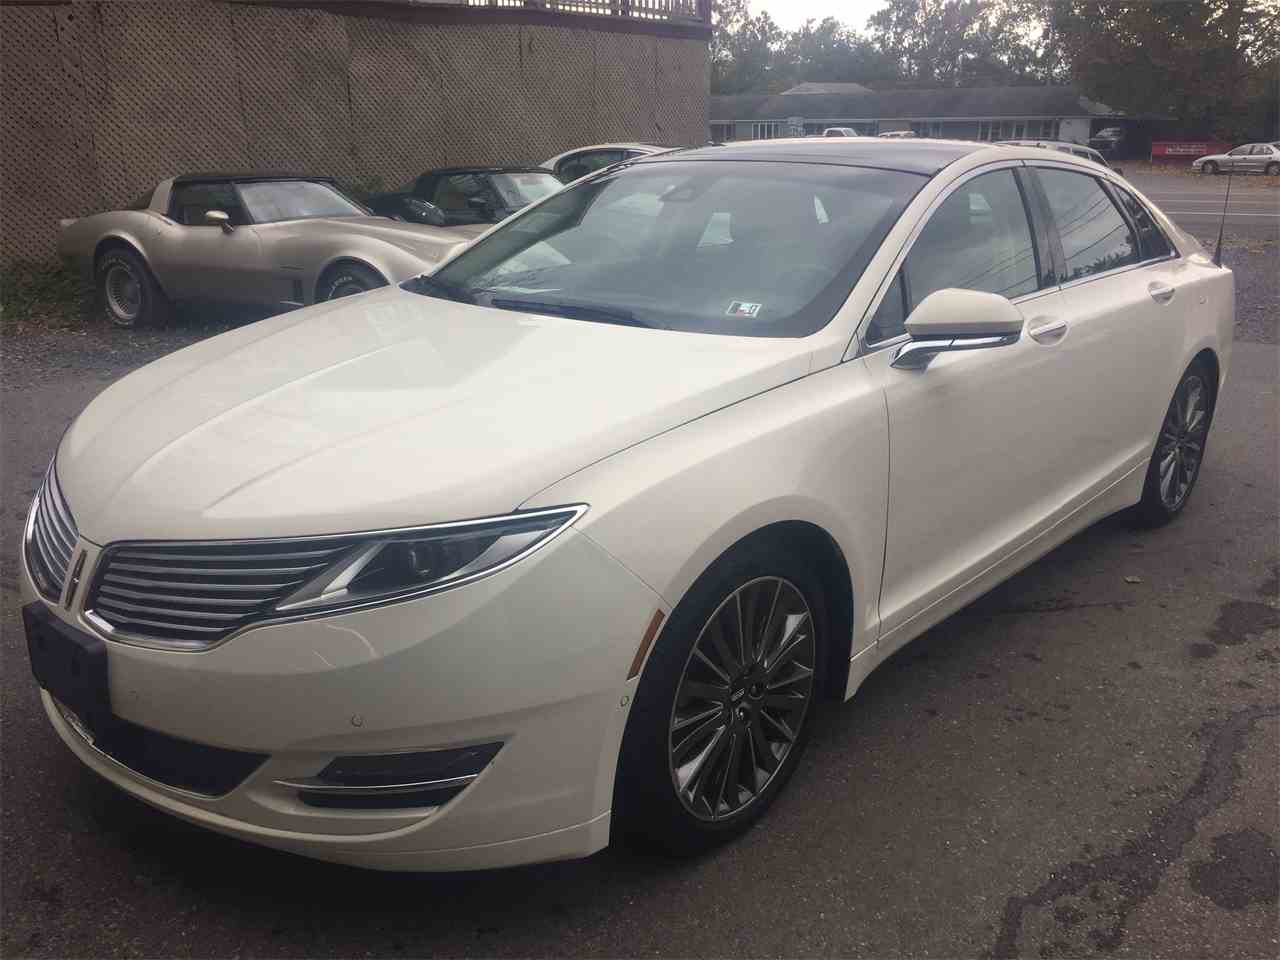 2013 Lincoln MKZ for Sale - CC-922490